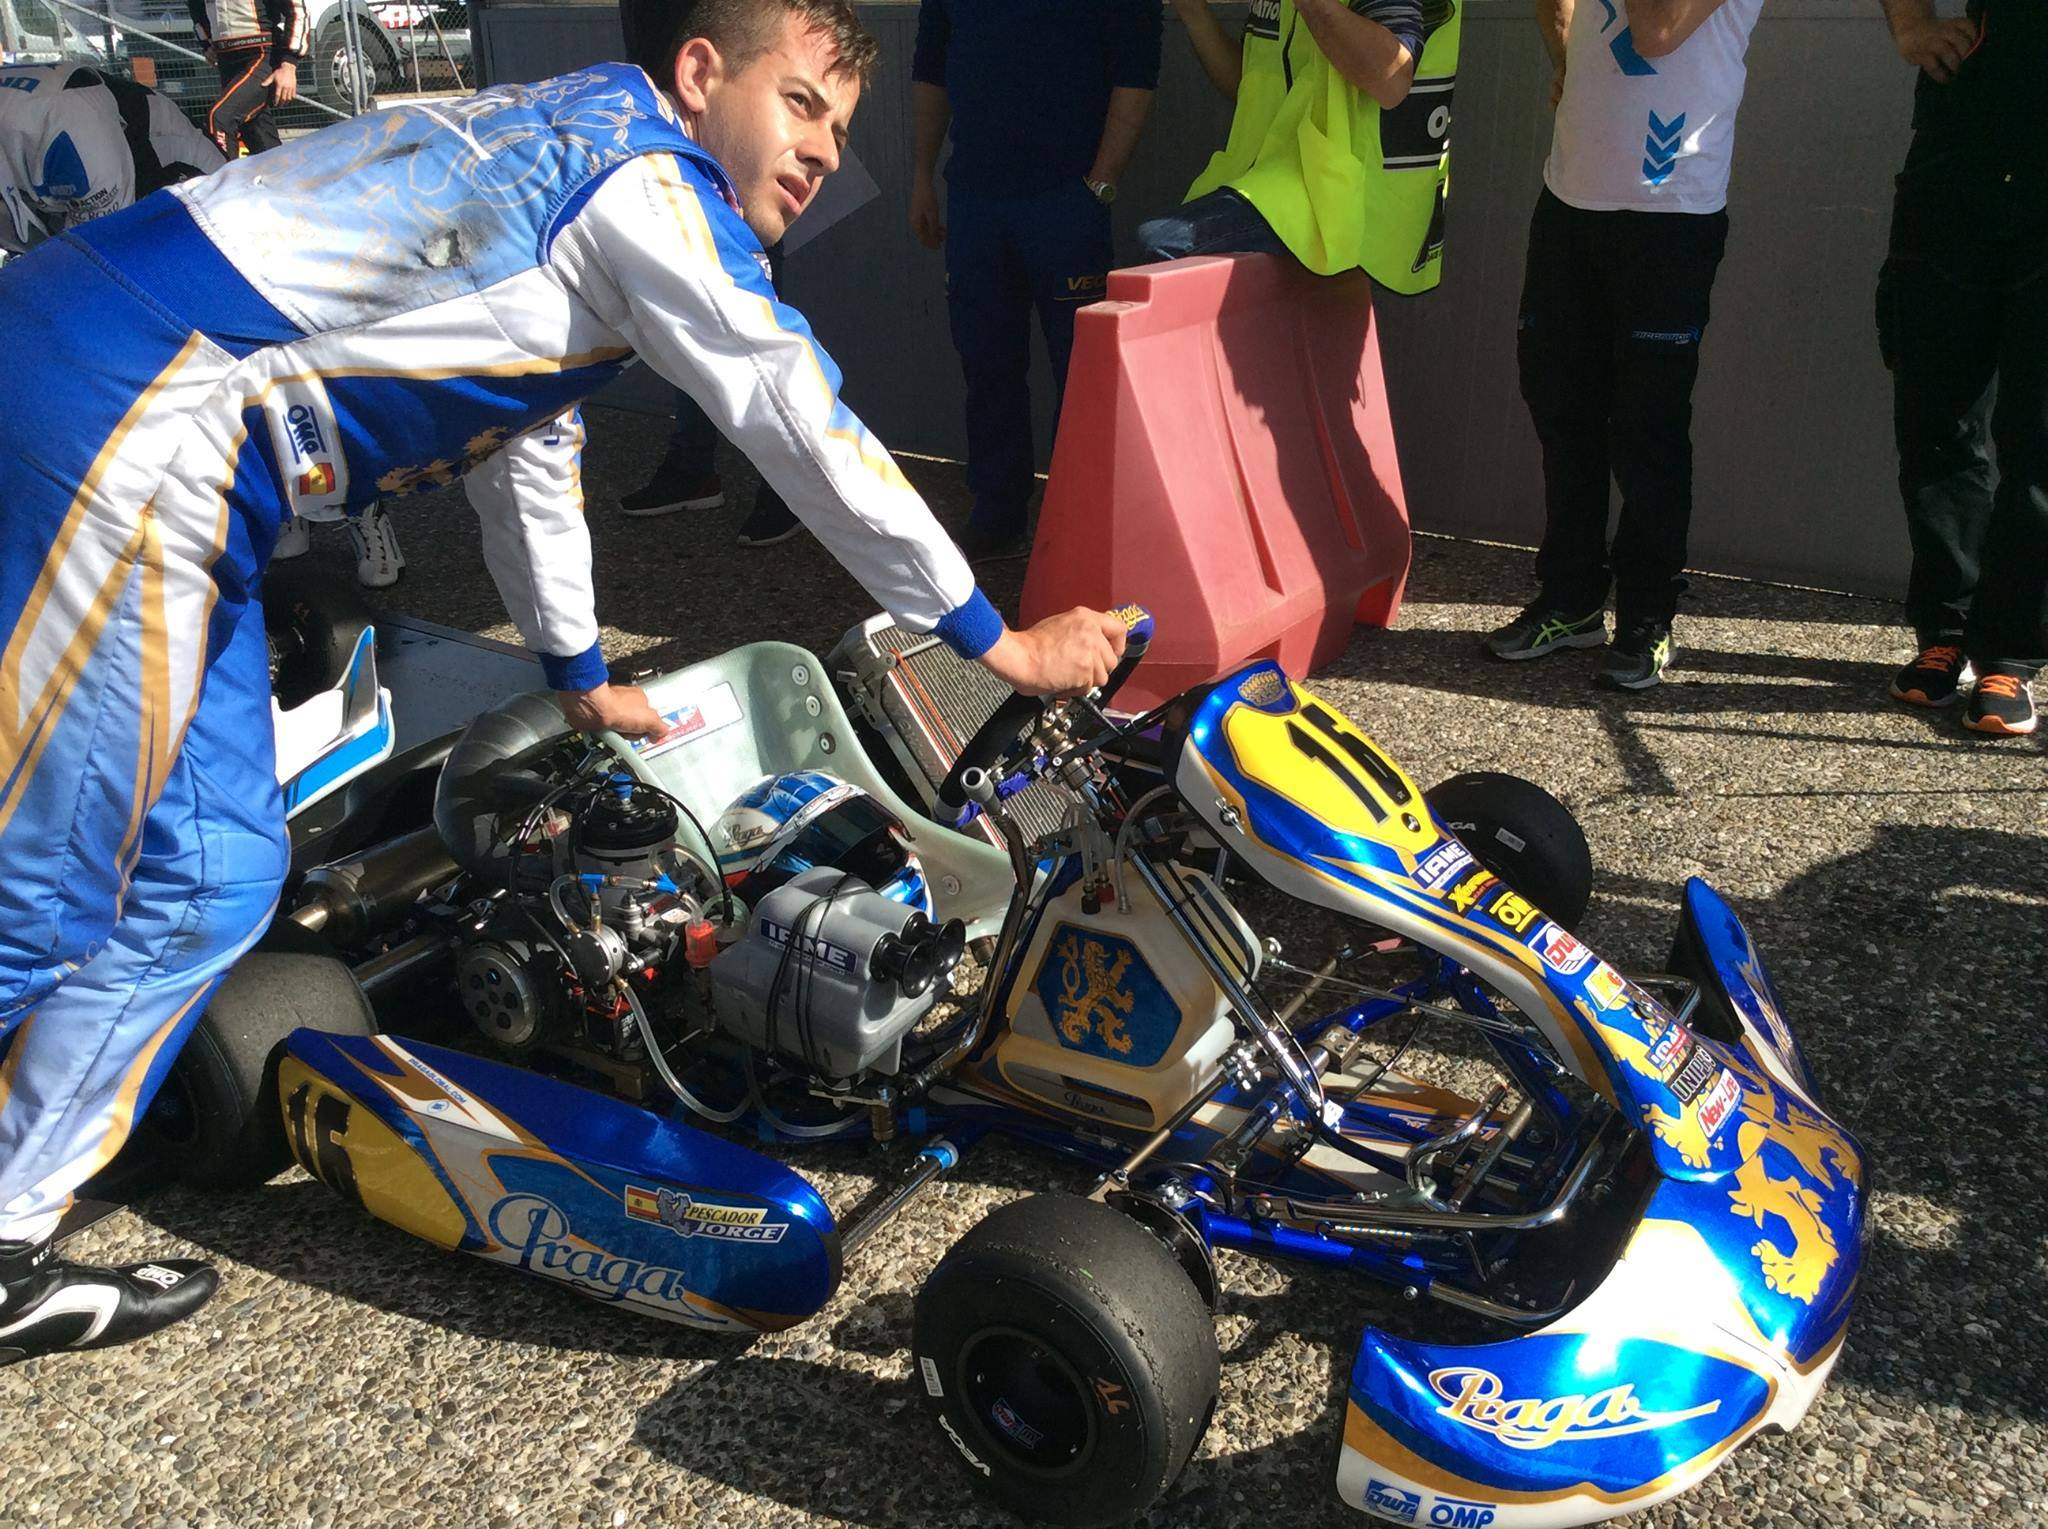 WSK Super Master Series Round 3 at La Conca